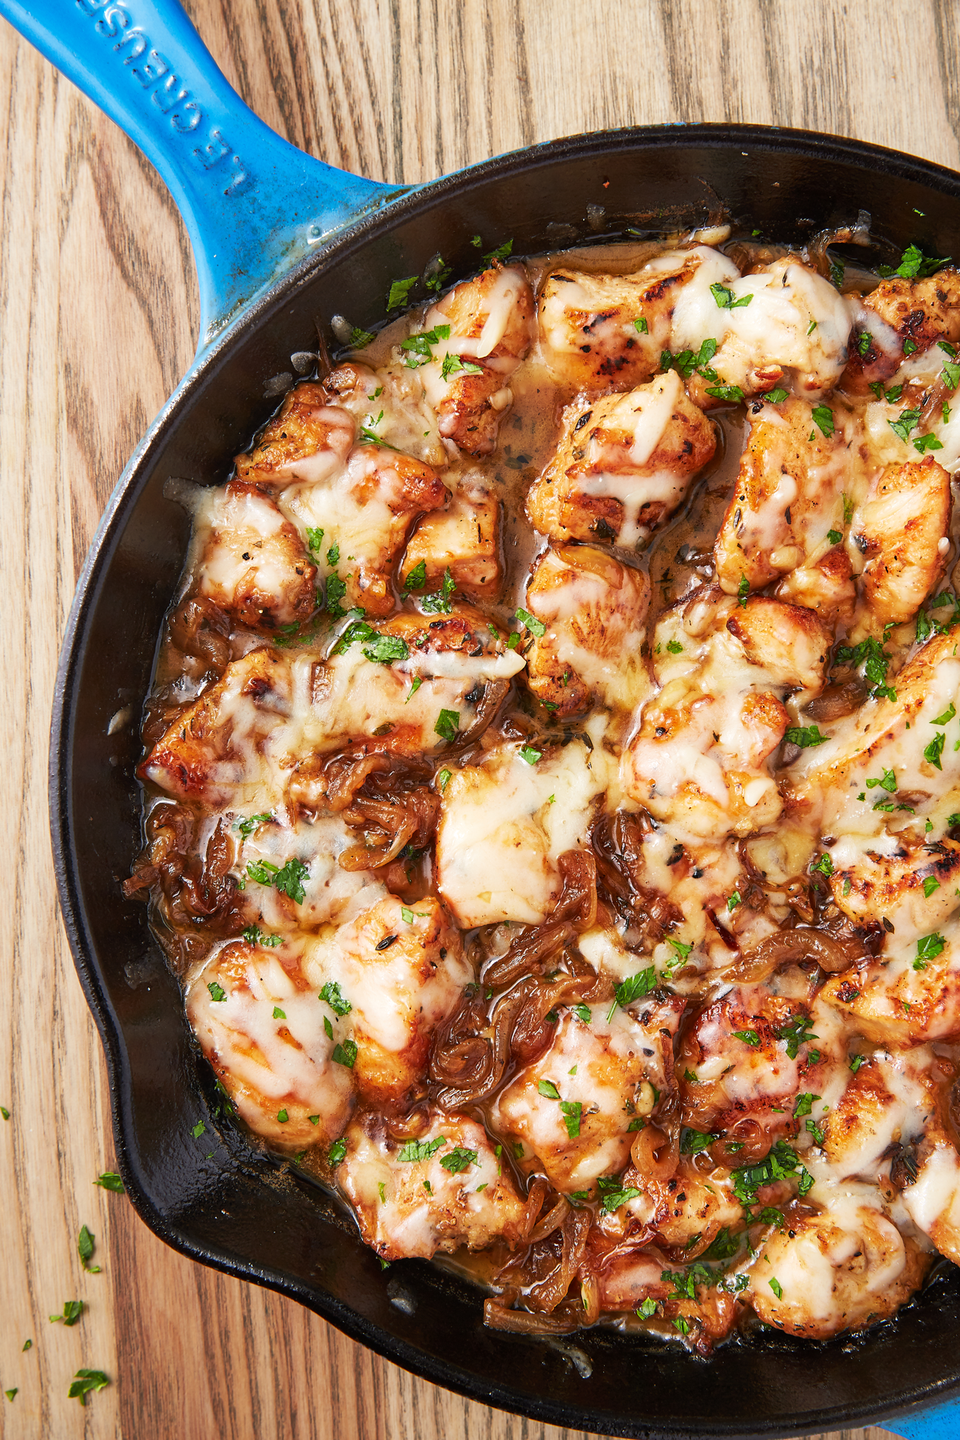 """<p>We love that this recipe comes together in one skillet and in less than an hour, meaning it's WAY faster than <a href=""""https://www.delish.com/cooking/recipe-ideas/a44297/easy-french-onion-soup-recipe/"""" rel=""""nofollow noopener"""" target=""""_blank"""" data-ylk=""""slk:French Onion Soup"""" class=""""link rapid-noclick-resp"""">French Onion Soup</a>. </p><p>Get the recipe from <a href=""""https://www.delish.com/cooking/recipe-ideas/recipes/a58148/french-onion-chicken-recipe/"""" rel=""""nofollow noopener"""" target=""""_blank"""" data-ylk=""""slk:Delish"""" class=""""link rapid-noclick-resp"""">Delish</a>.</p>"""